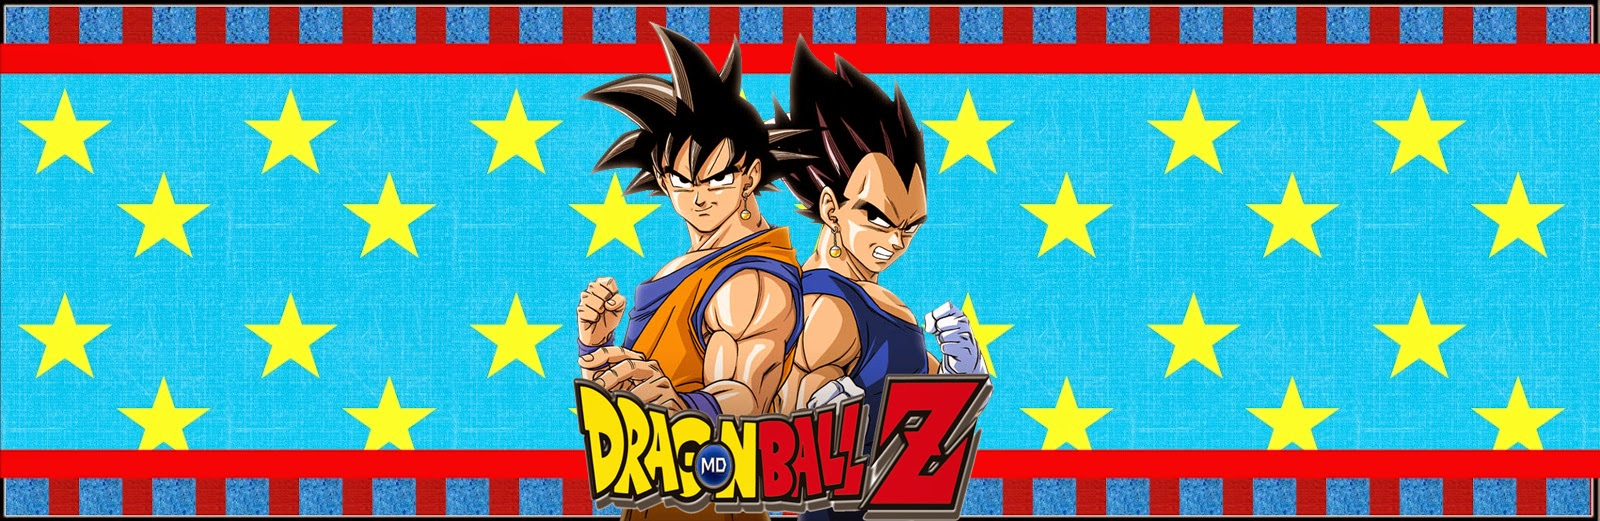 Dragon Ball Z Free Printable Candy Bar Labels Oh My